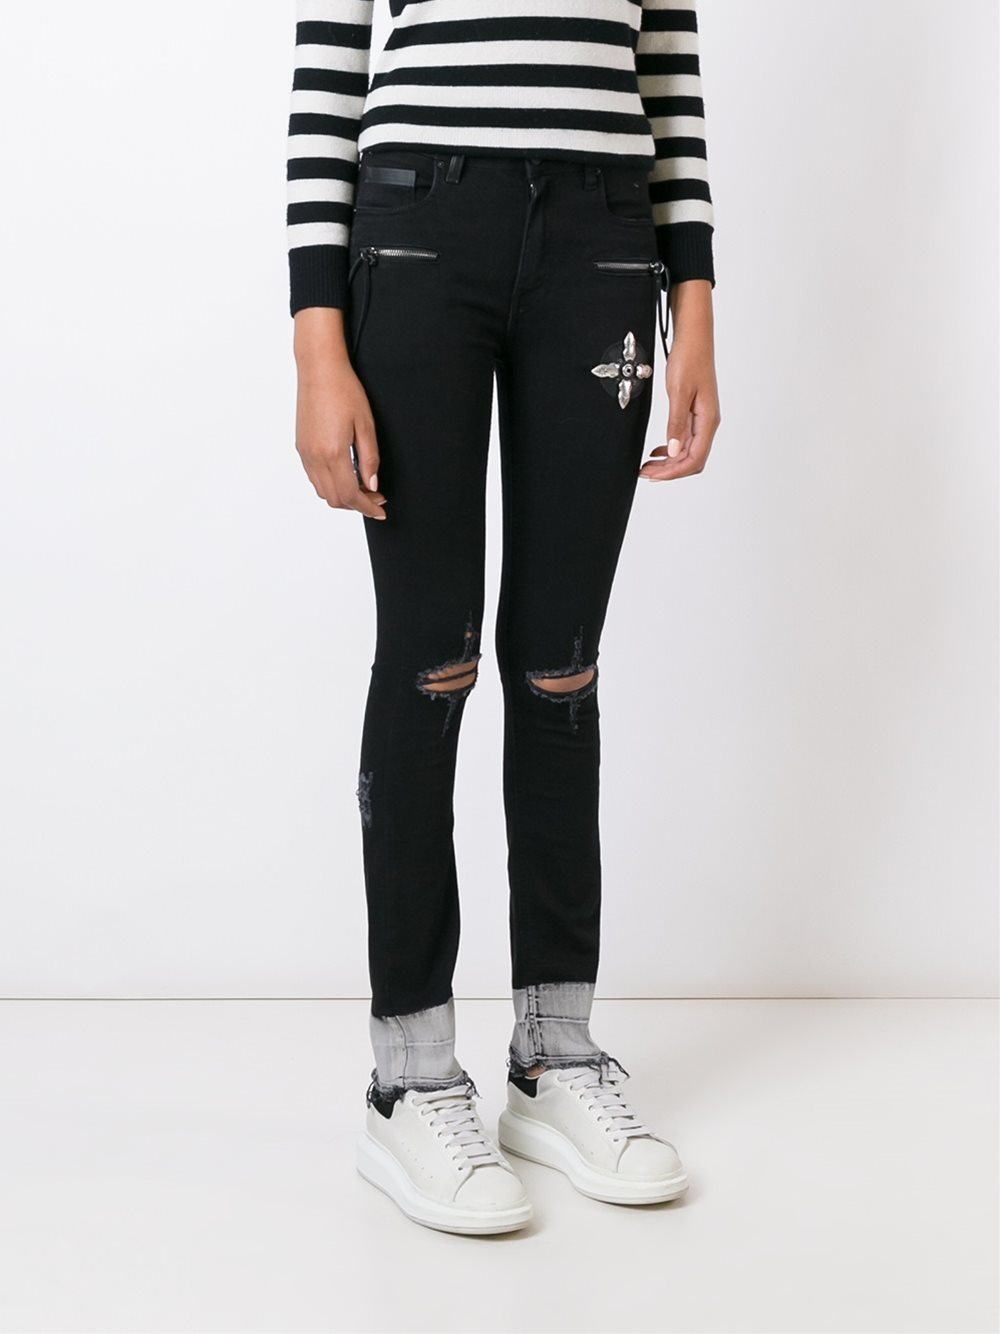 MARCELO BURLON WOMAN KEIRA SLIM FIT DENIM